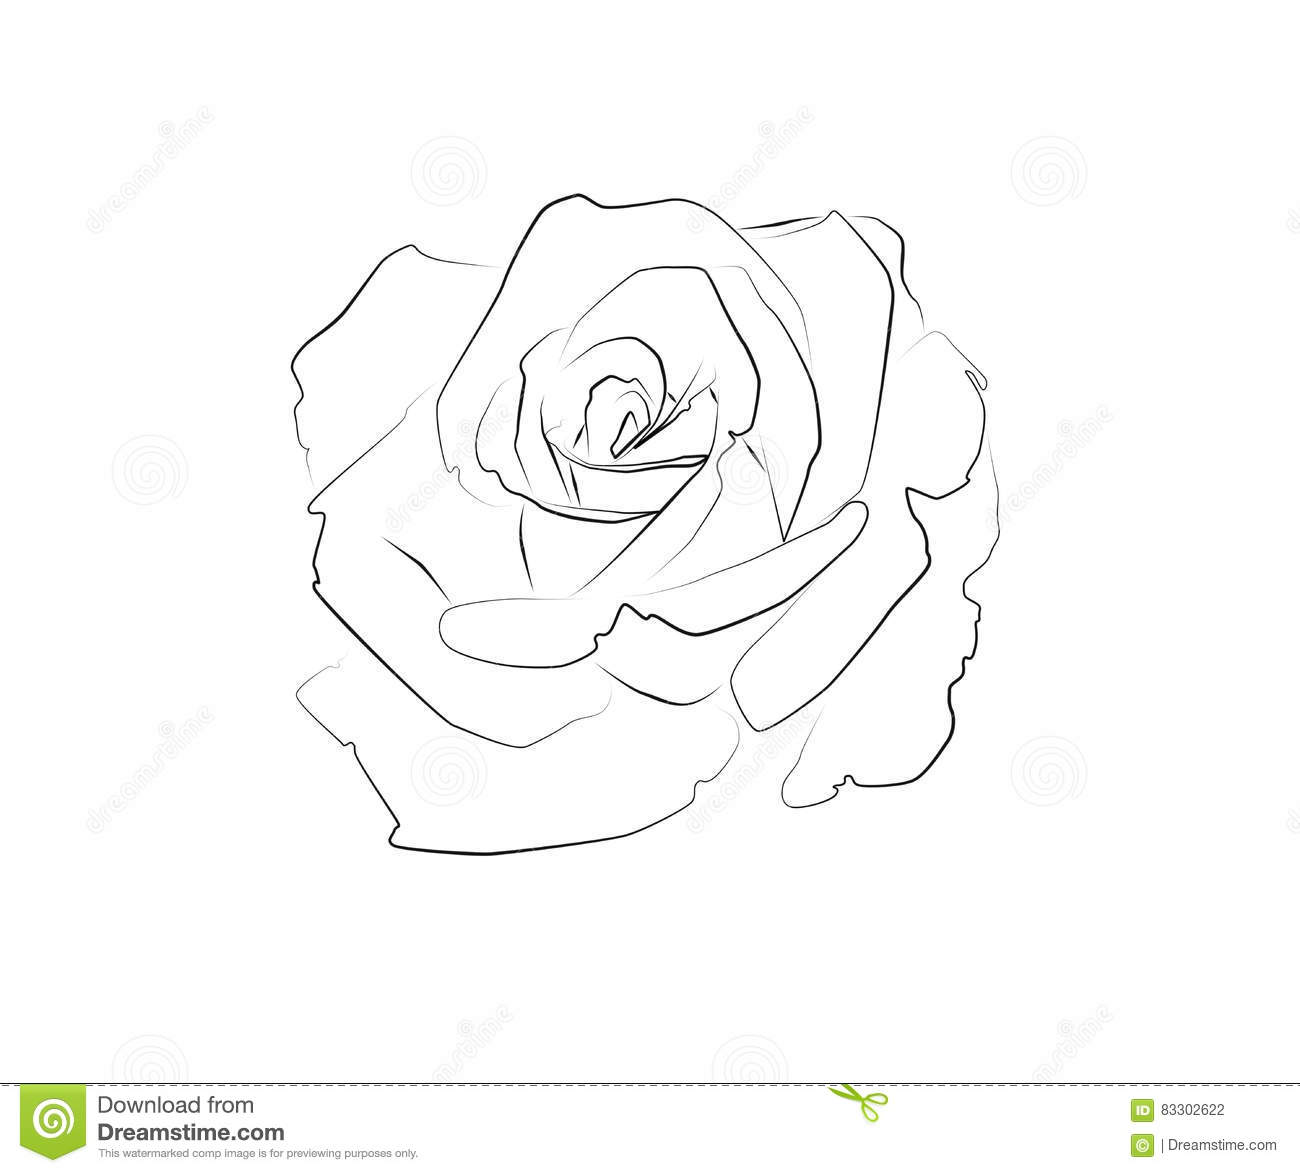 Dessin au trait d 39 une rose illustration stock - Dessin une rose ...